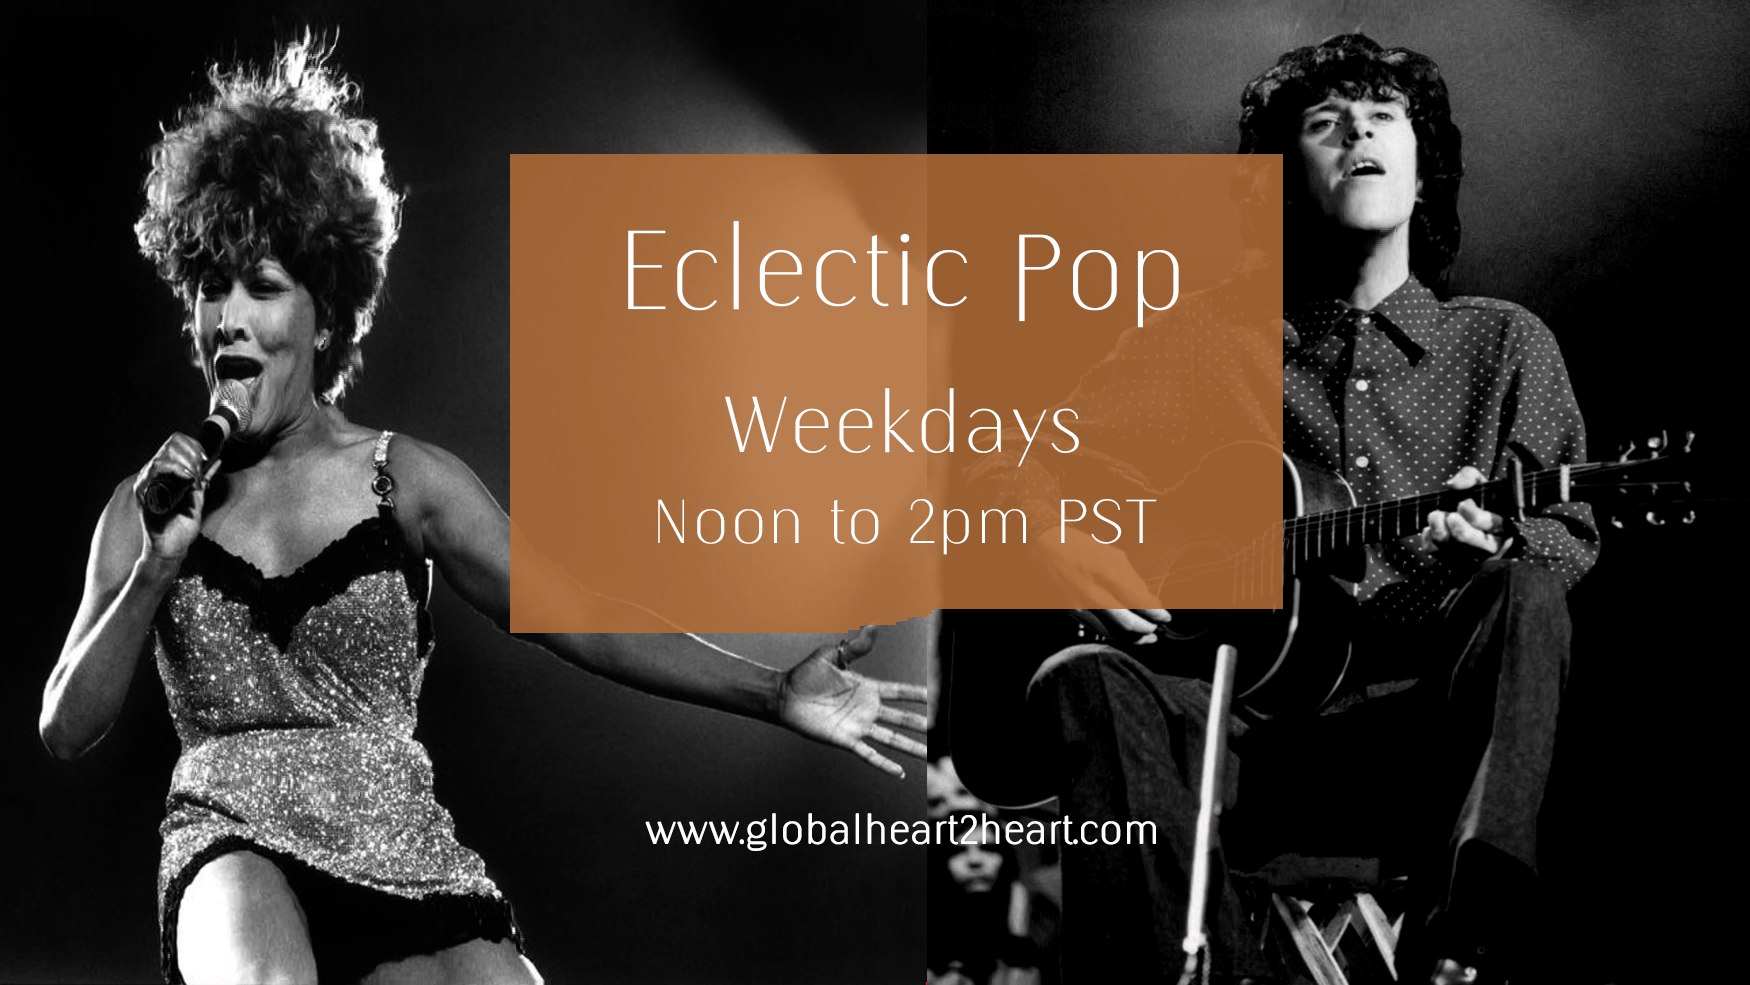 Eclectic Pop Noon to 2 pm PST